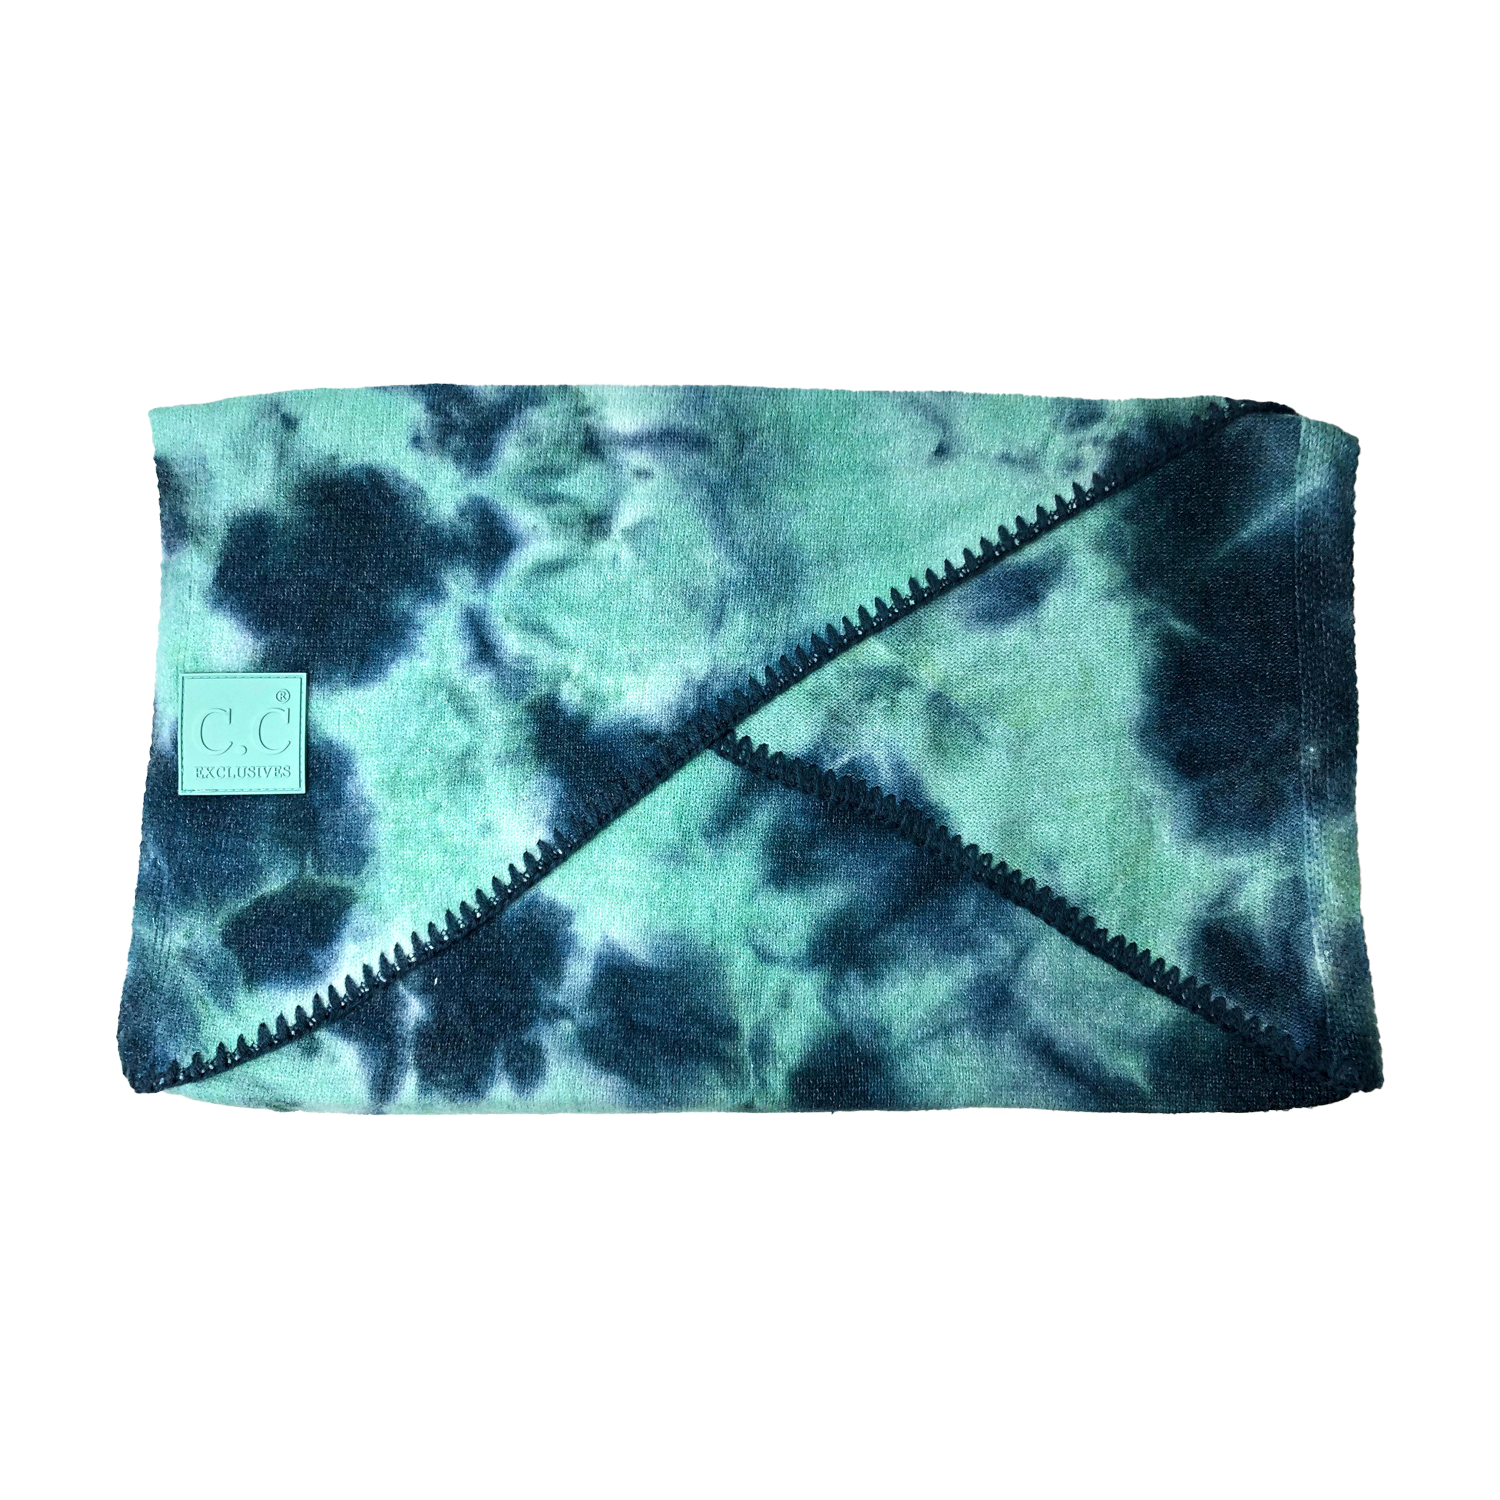 SF-7380 Tie Dye Scarf with C.C Rubber Patch - Deep Teal/Sea Green